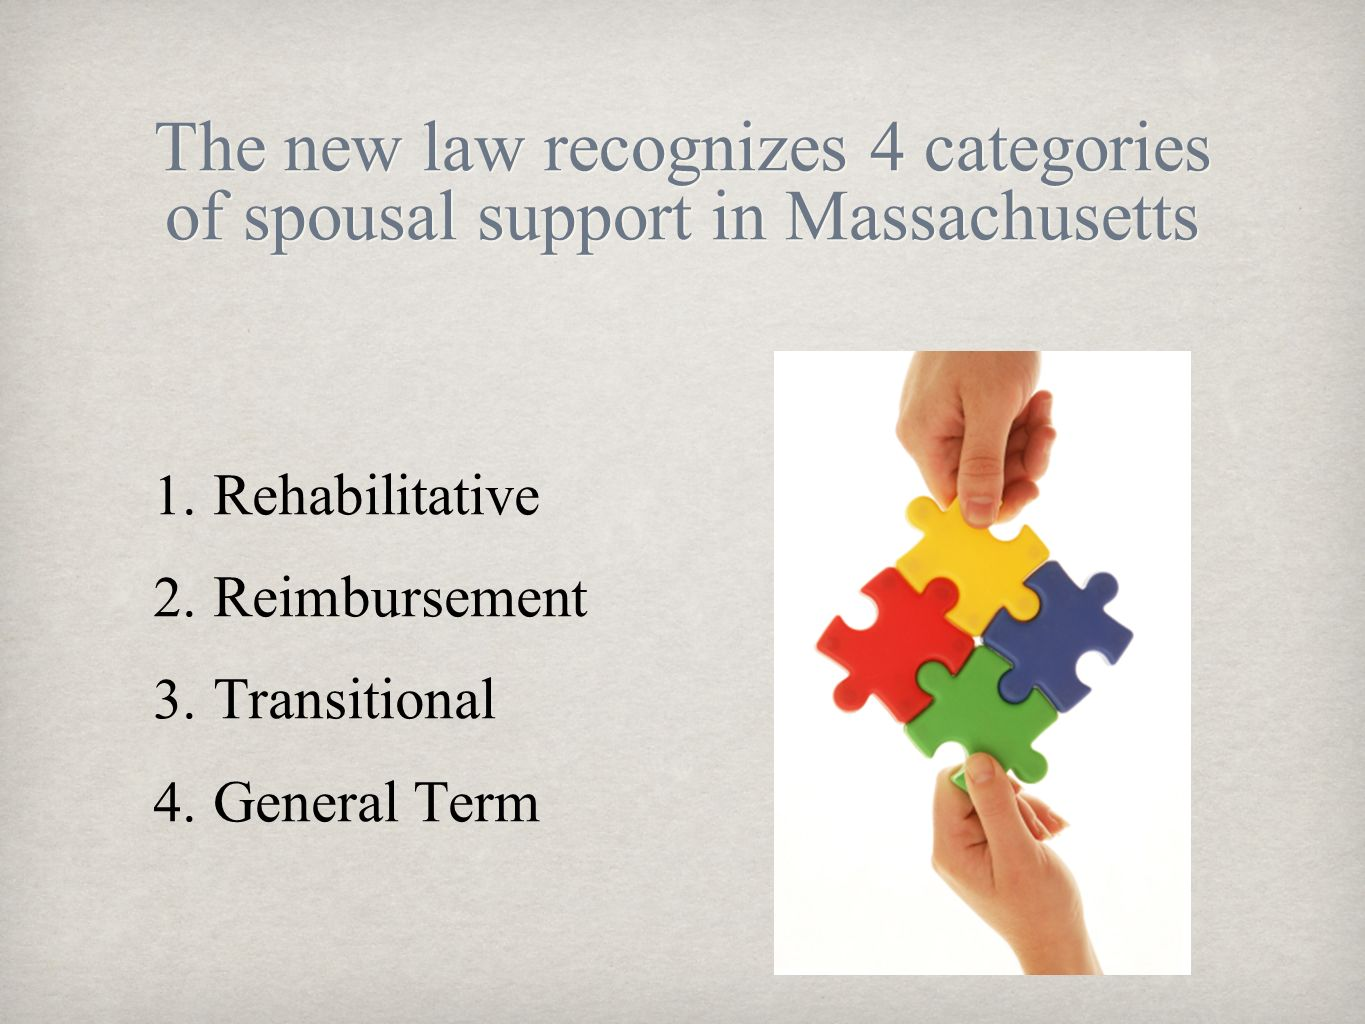 The new law recognizes 4 categories of spousal support in Massachusetts